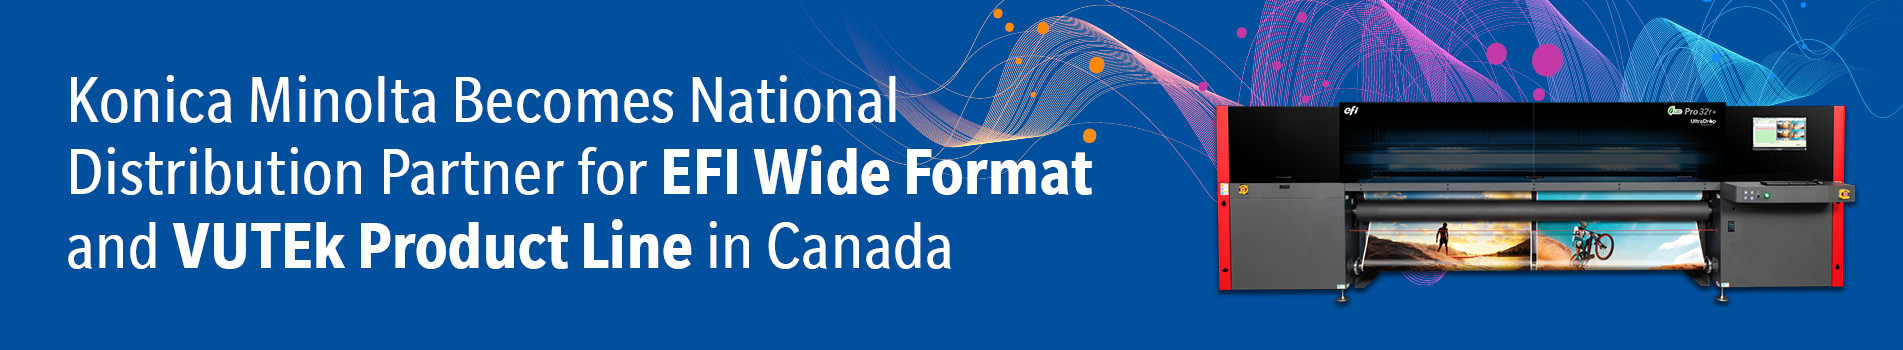 Konica Minolta becomes national distribution partner for EFI Wide Format and VUTEk in Canada